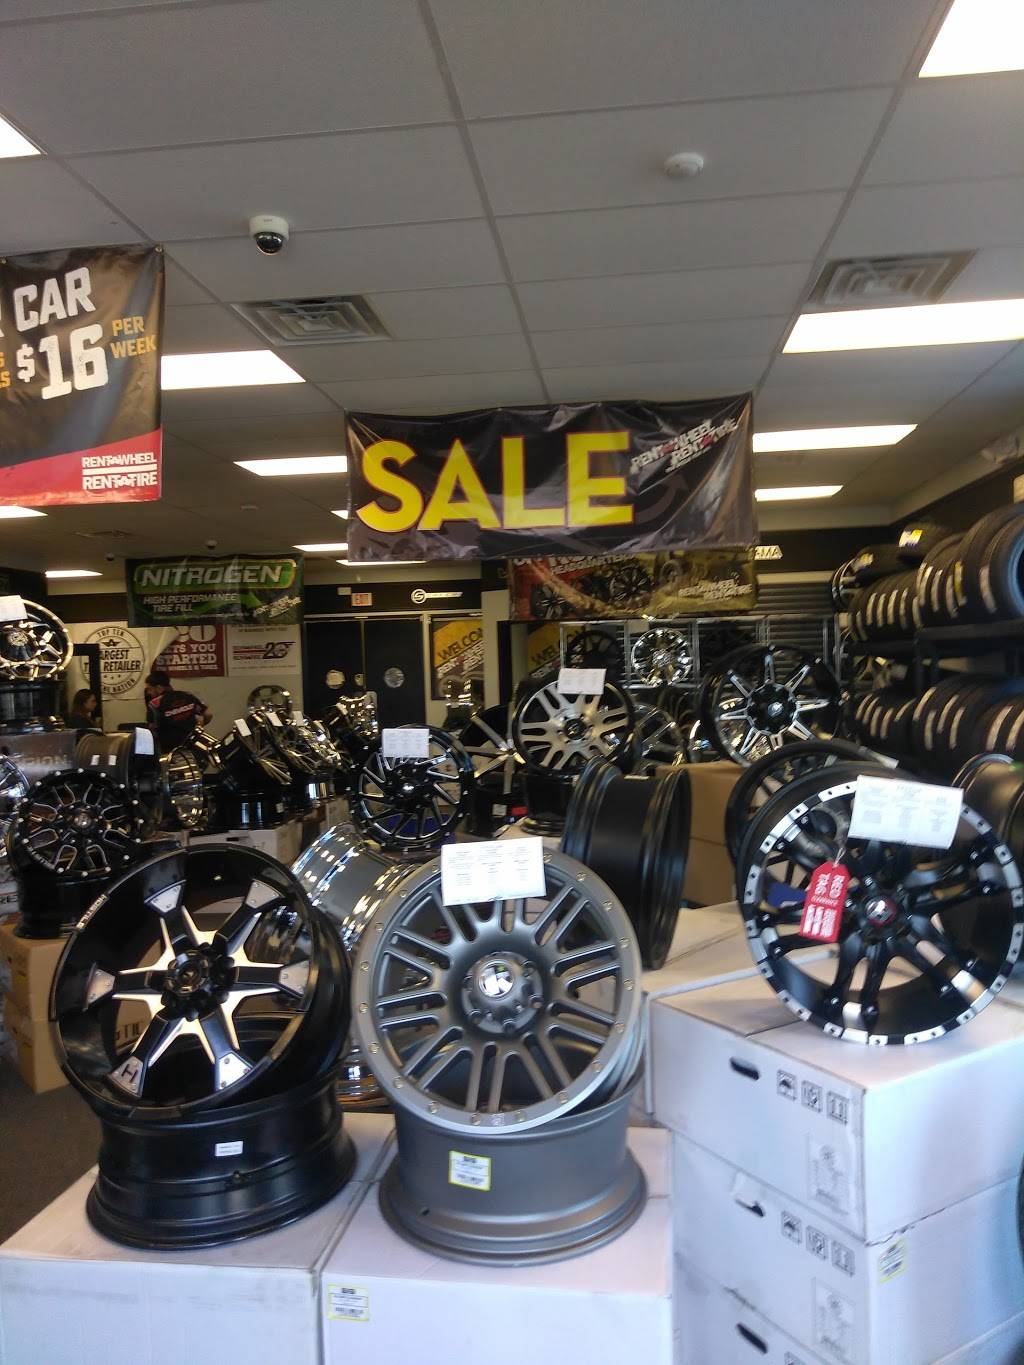 Rent-A-Tire Custom Wheels & Tires in Pasadena, TX - car repair  | Photo 2 of 4 | Address: 2941 Spencer Hwy, Pasadena, TX 77504, USA | Phone: (713) 943-8794